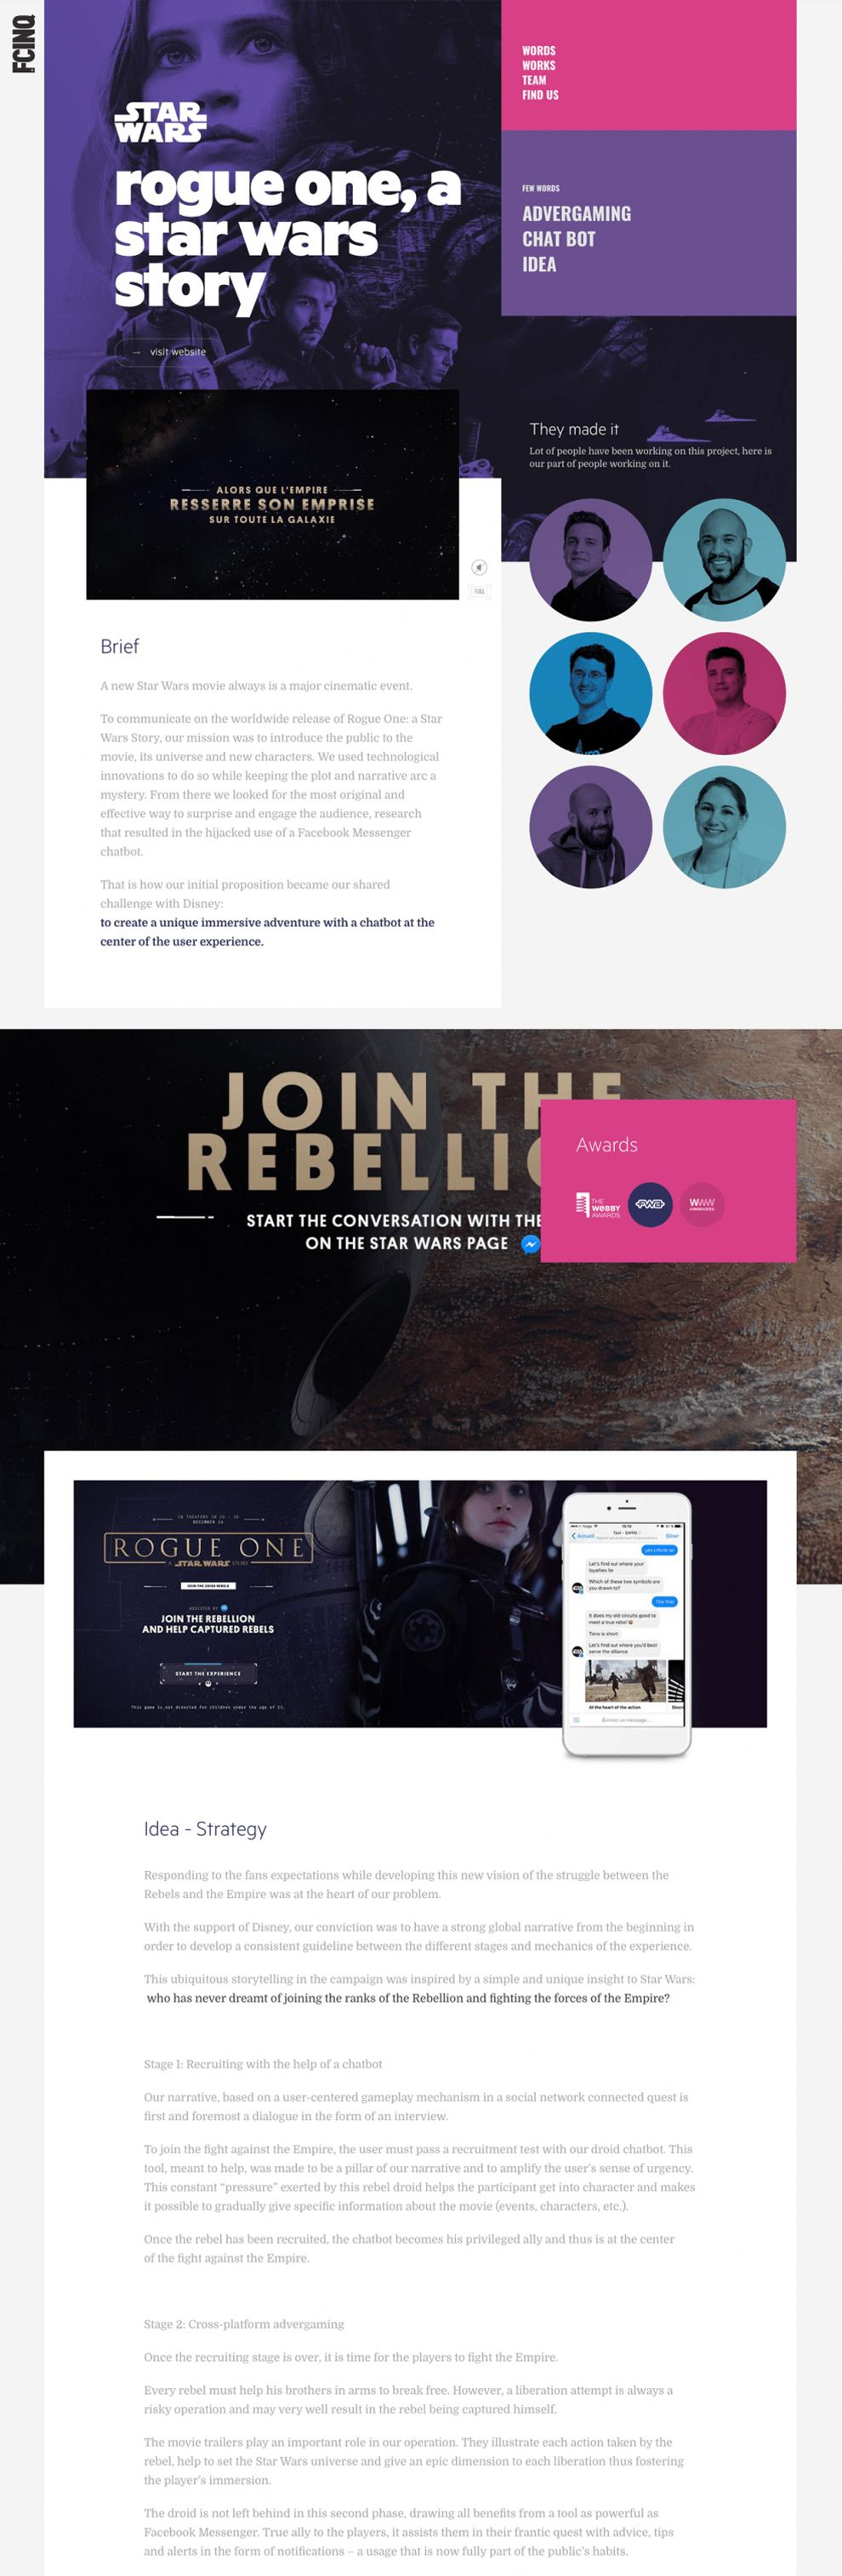 FCINQ Beautiful Project Page